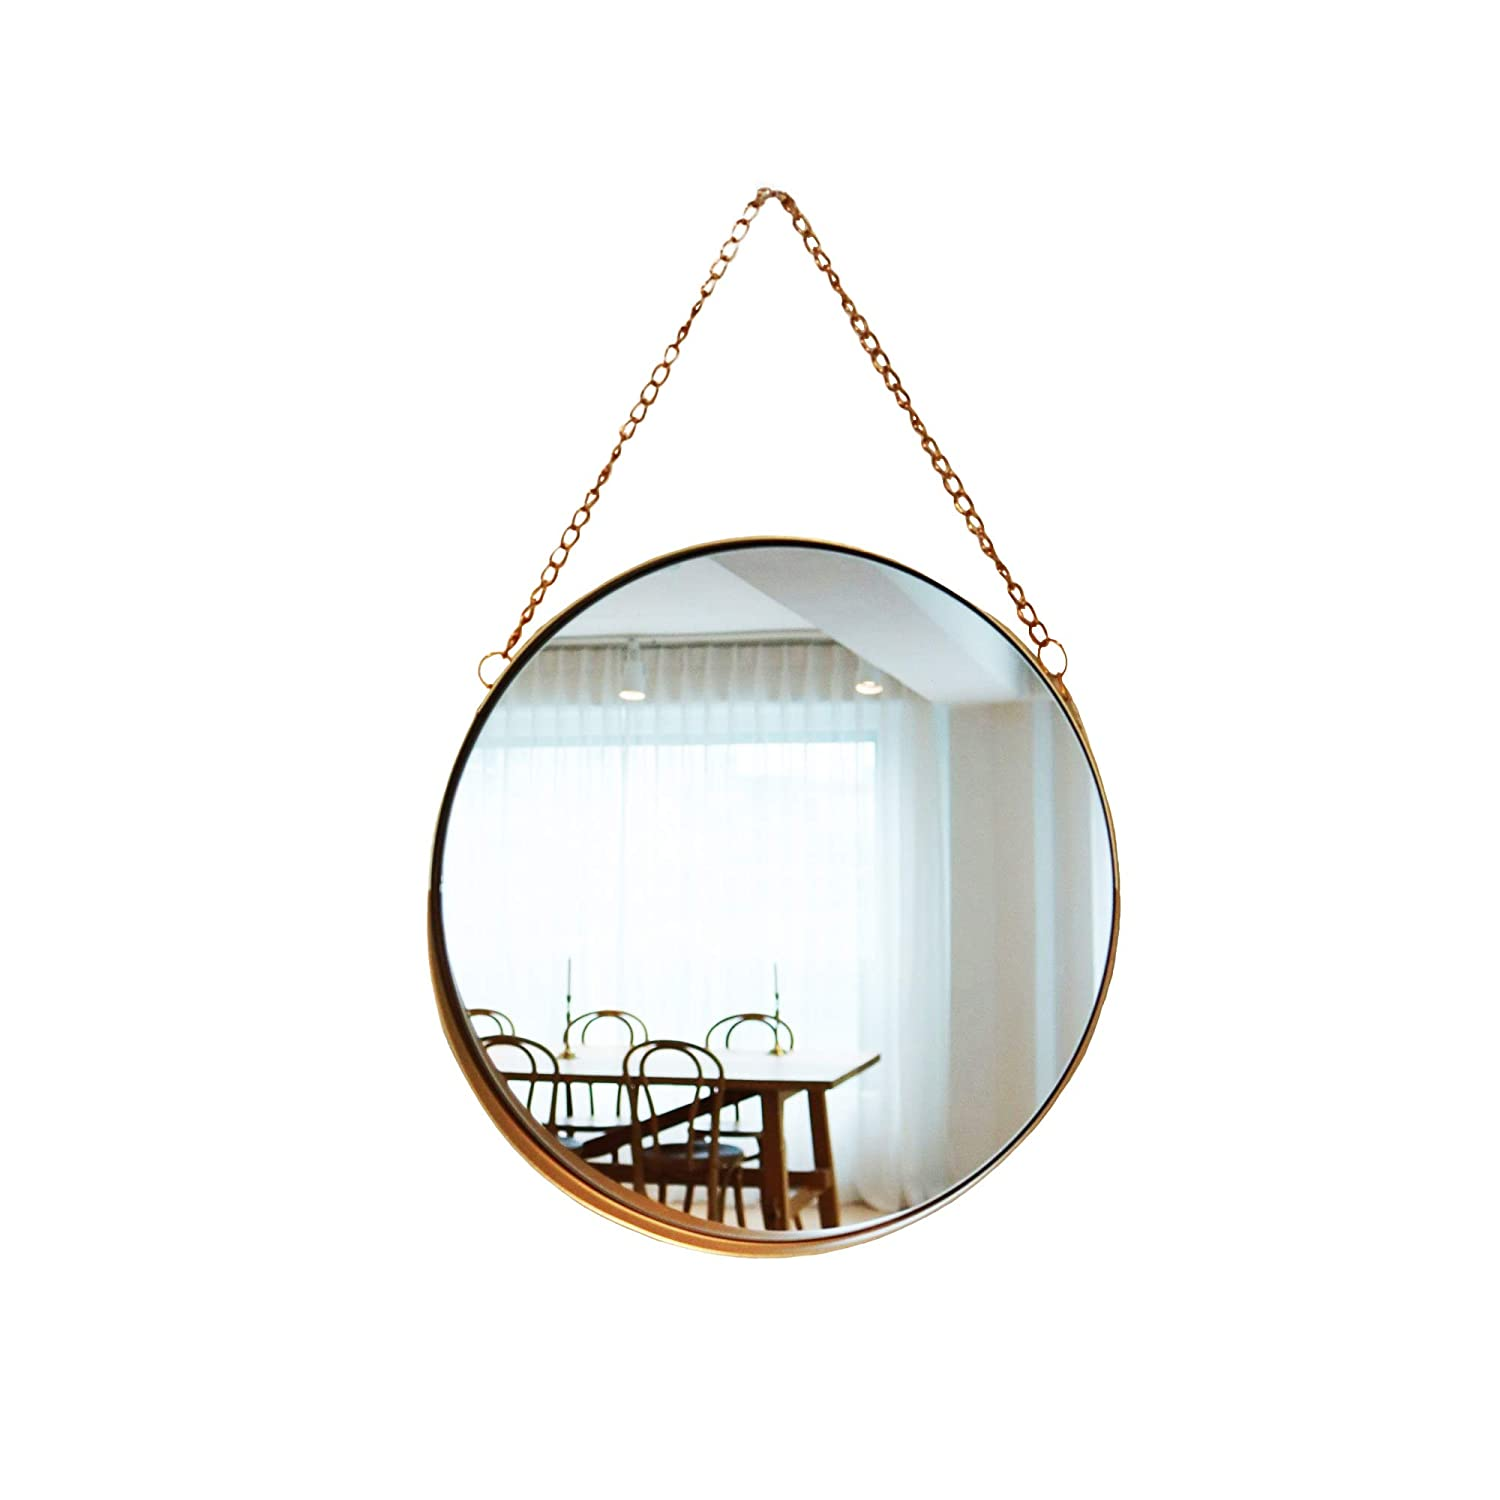 April box–Decorative Hanging Wall Mirror – Small Vintage Mirror for Wall - 10 Inch Gold Metallic Frame Mirror – Premium Quality Material Wall Mirrors –Easy Mounting –Ideal for Bathroom,Home Decor